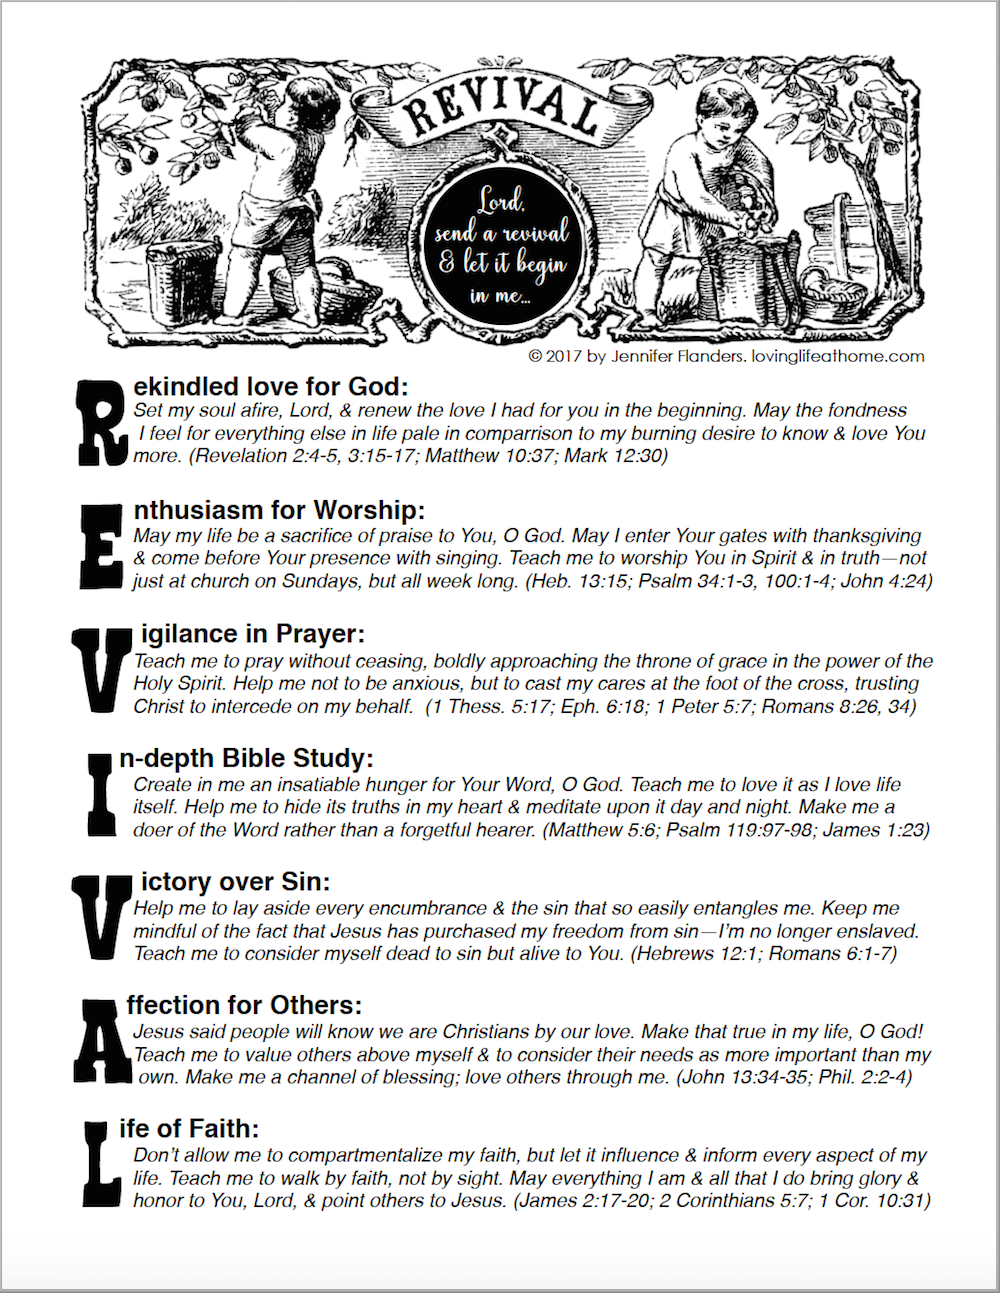 Praying for Revival - free printable prayer guide from lovinglifeathome.com